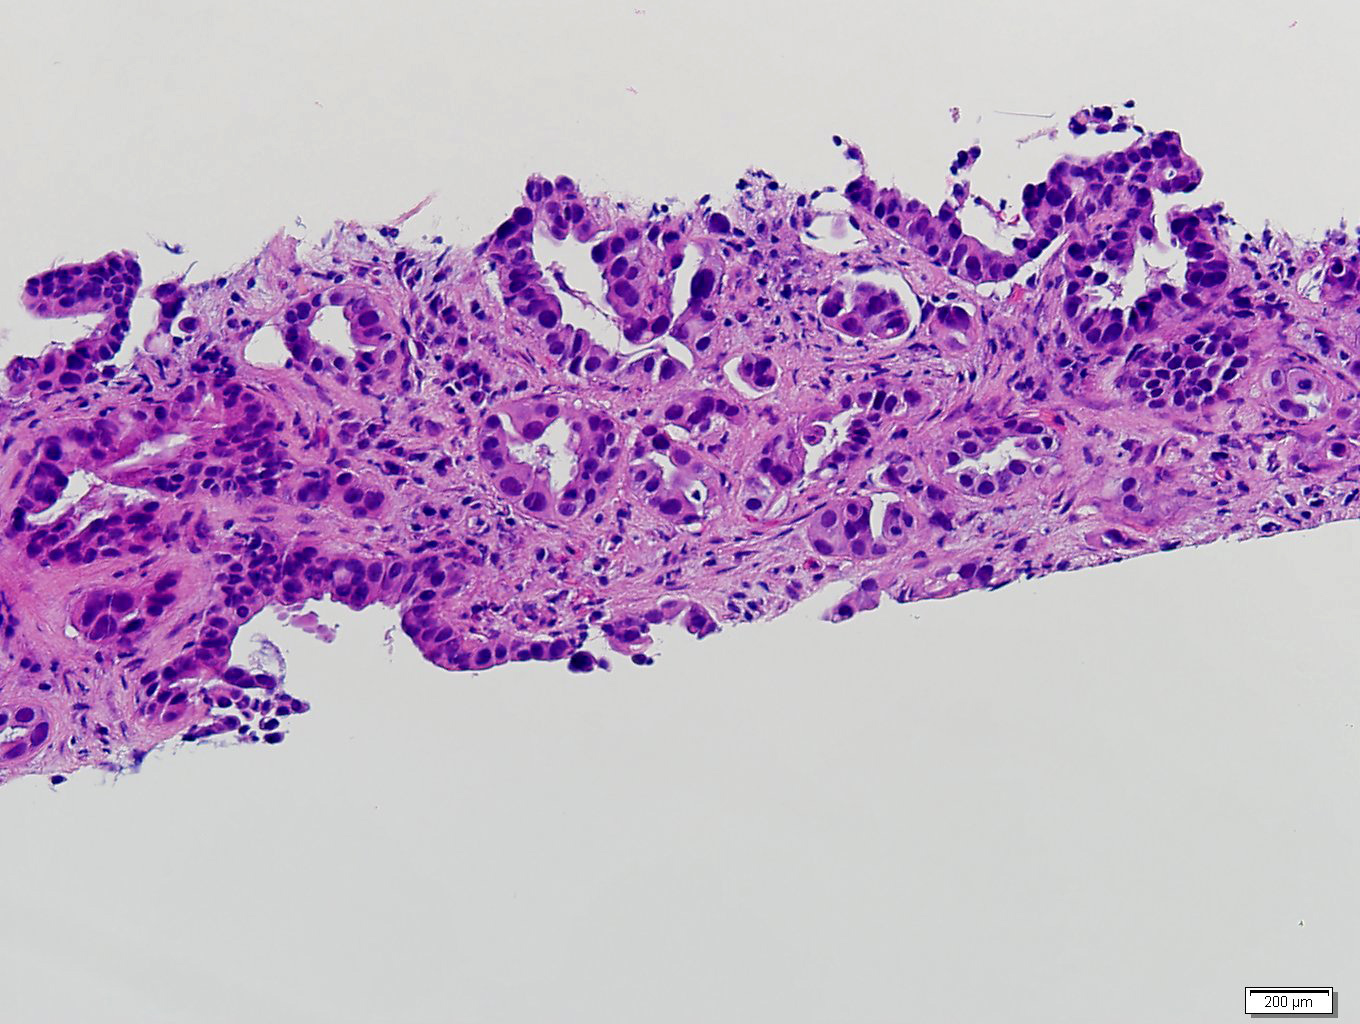 Adrenal metastasis from lung adenocarcinoma